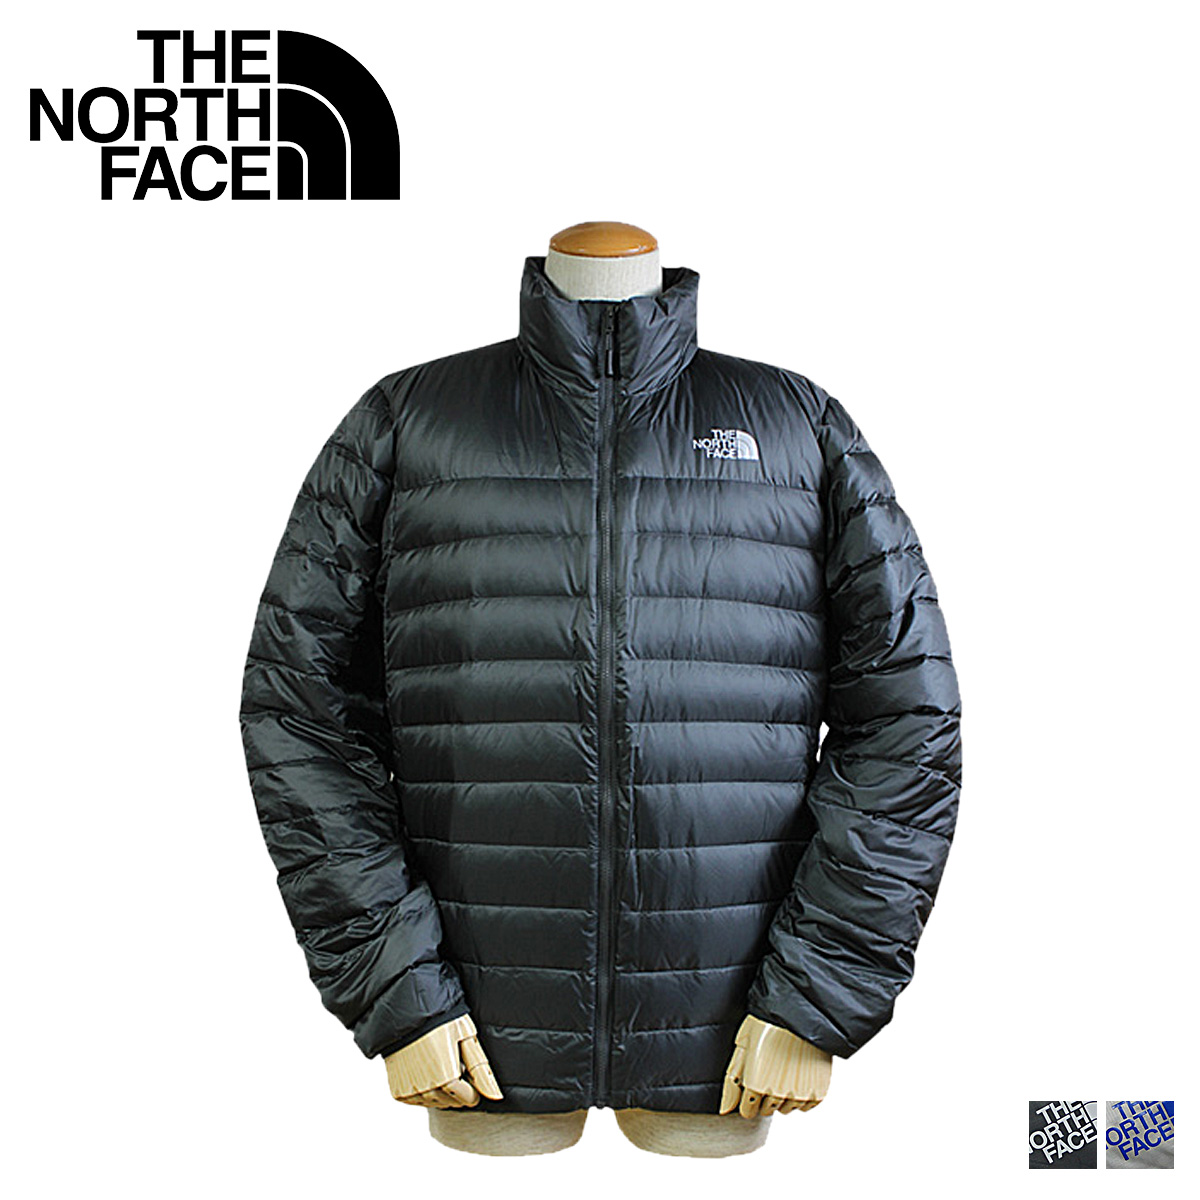 North face mens jacket price